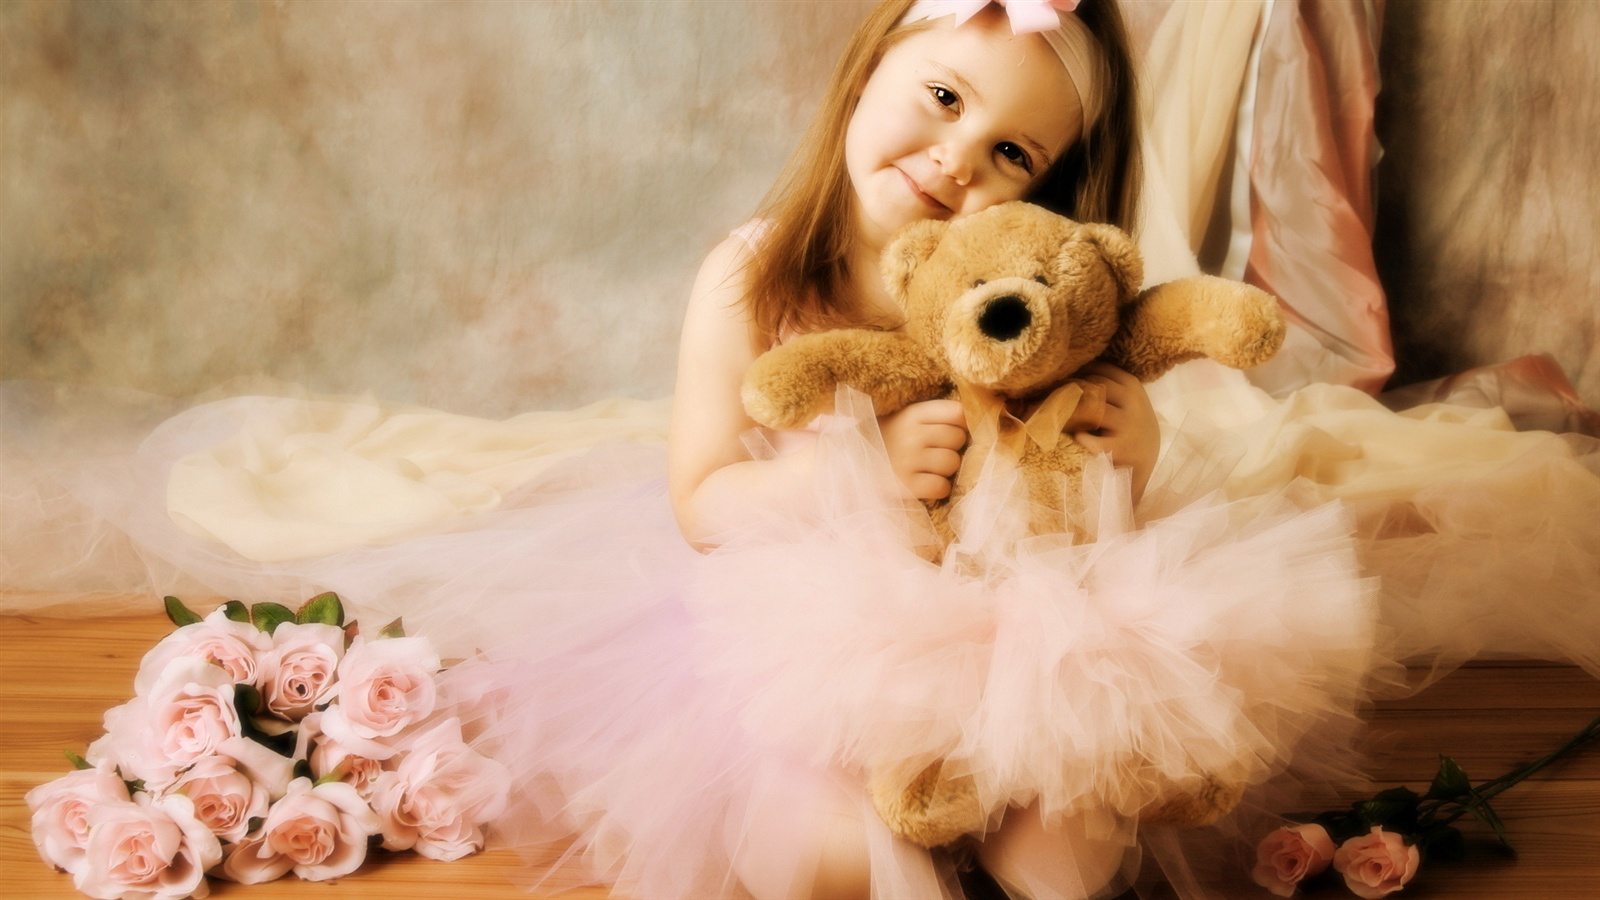 Cute girl with toy bear wallpaper - 1600x900